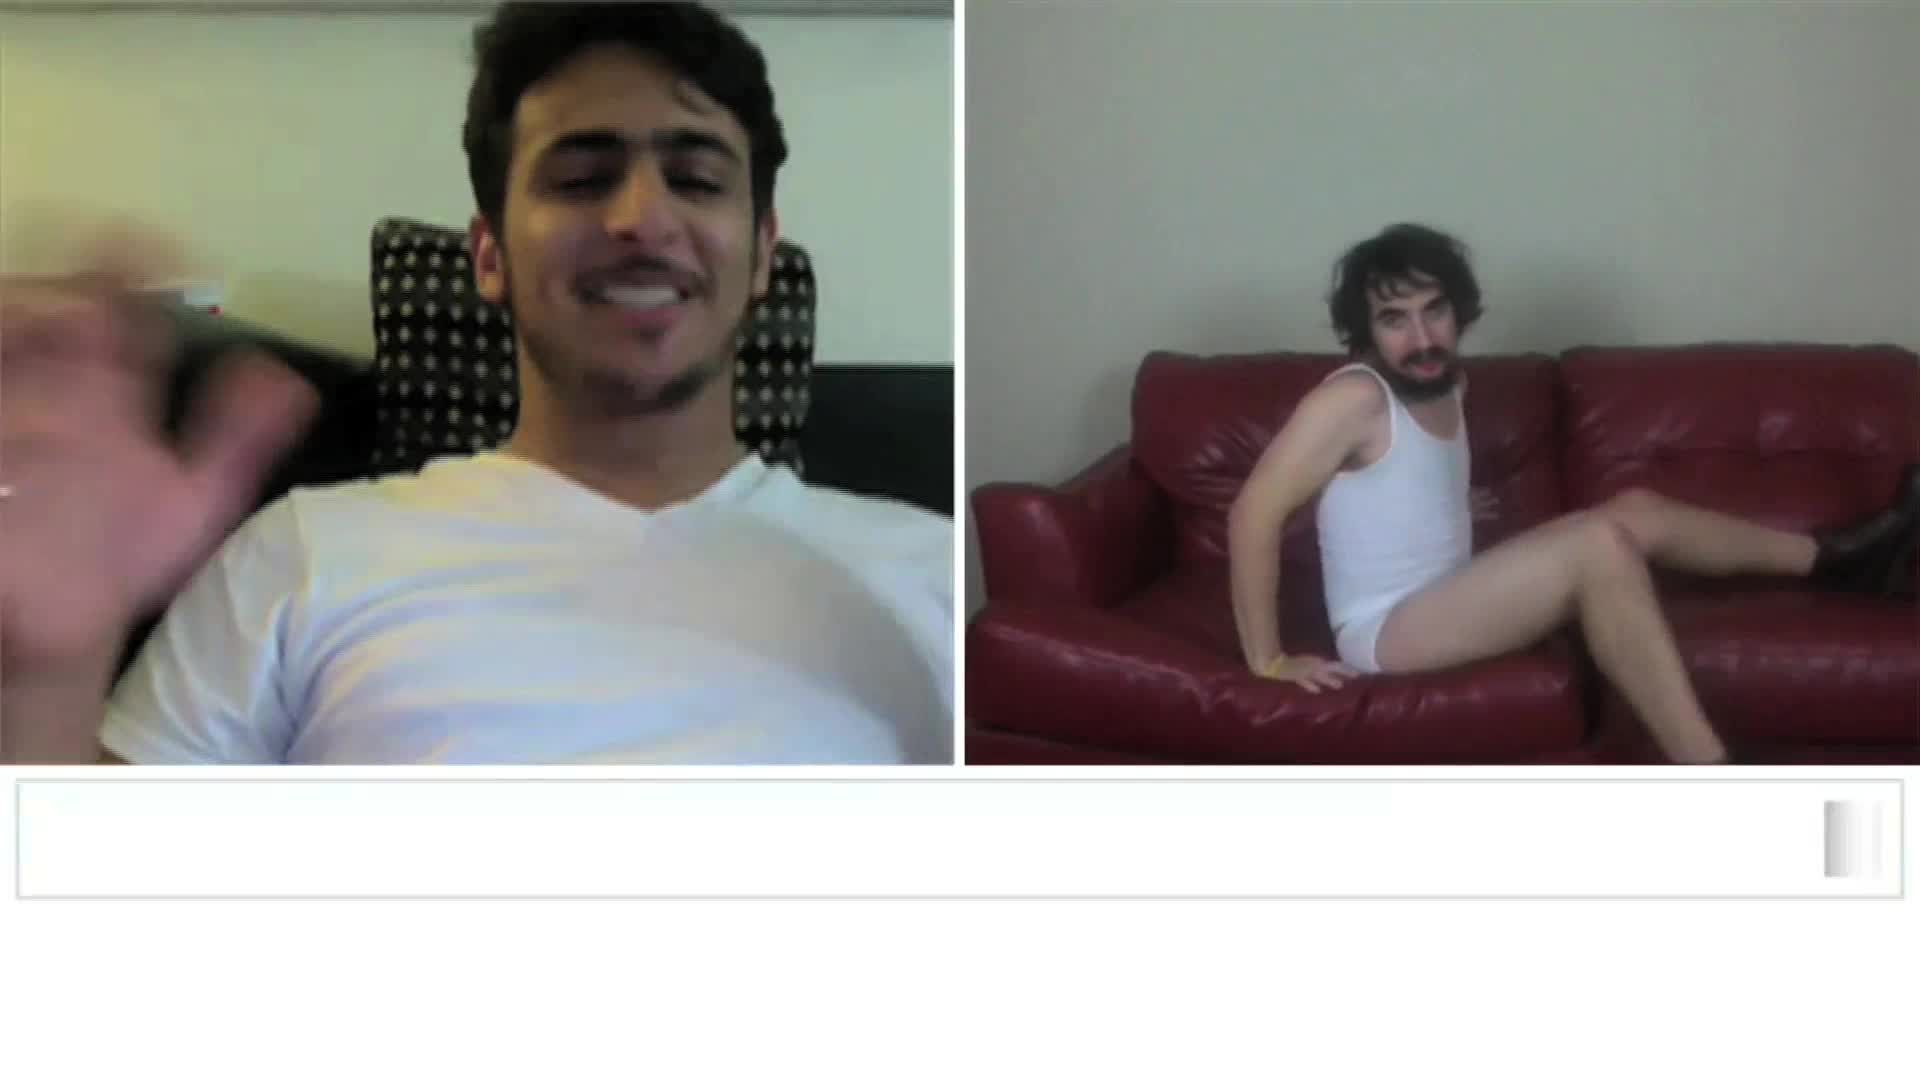 Honoree - Miley Cyrus – Wrecking Ball (Chatroulette Version)